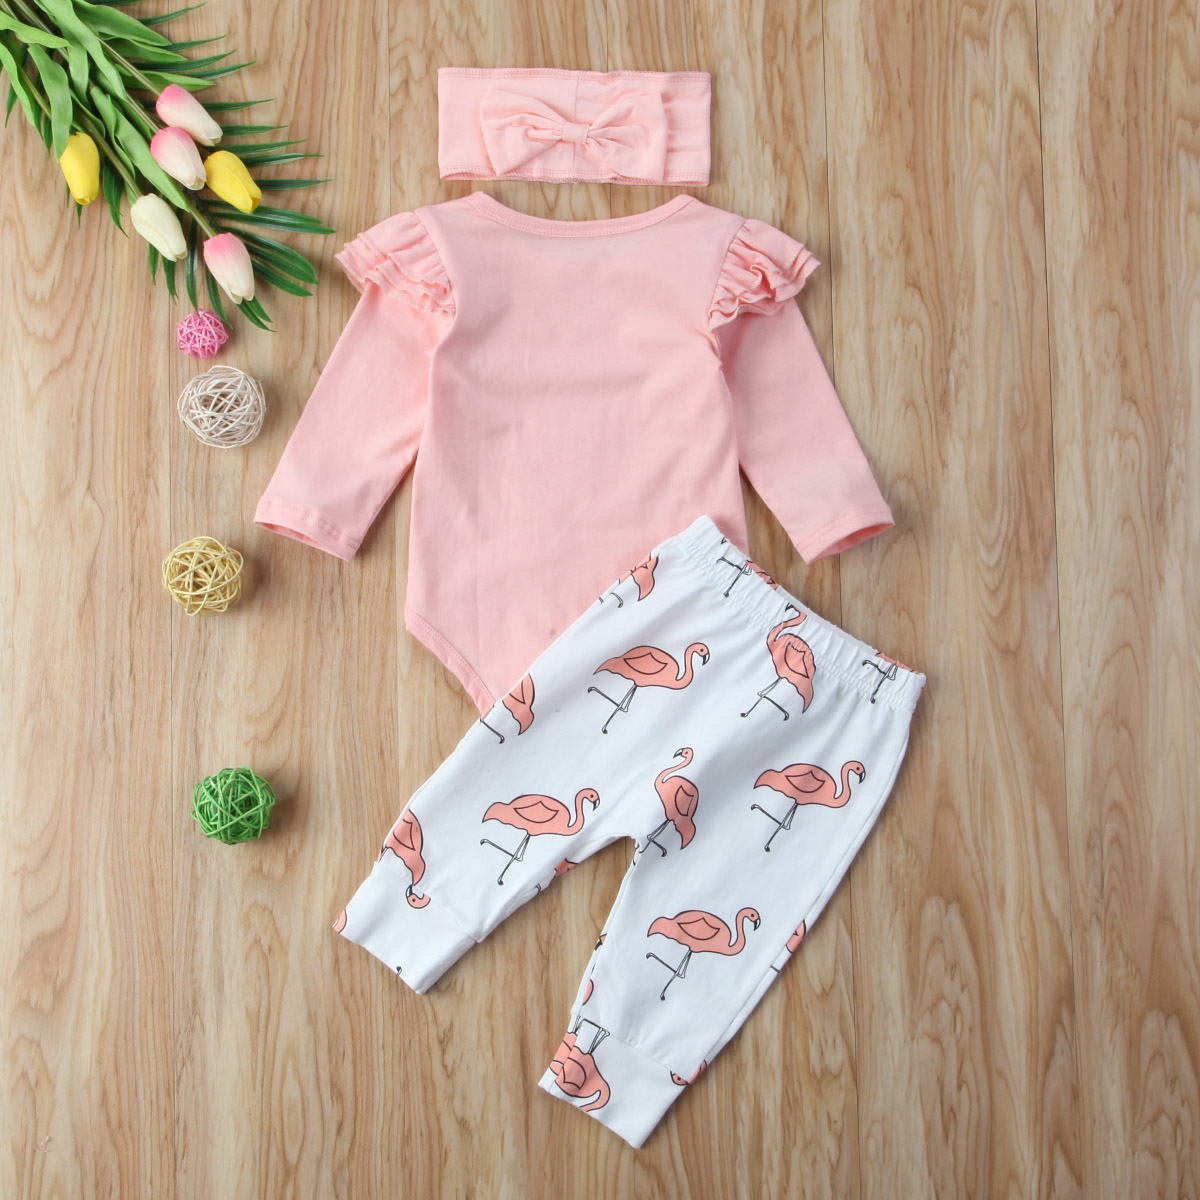 2dfd0d181d92c Newborn Baby Girl Clothes Set Pink Ruffle Autumn O Neck Long Sleeve  Bodysuits Flamingo Pants Headband Girls Clothing Outfit 3PCs-in Clothing  Sets from ...